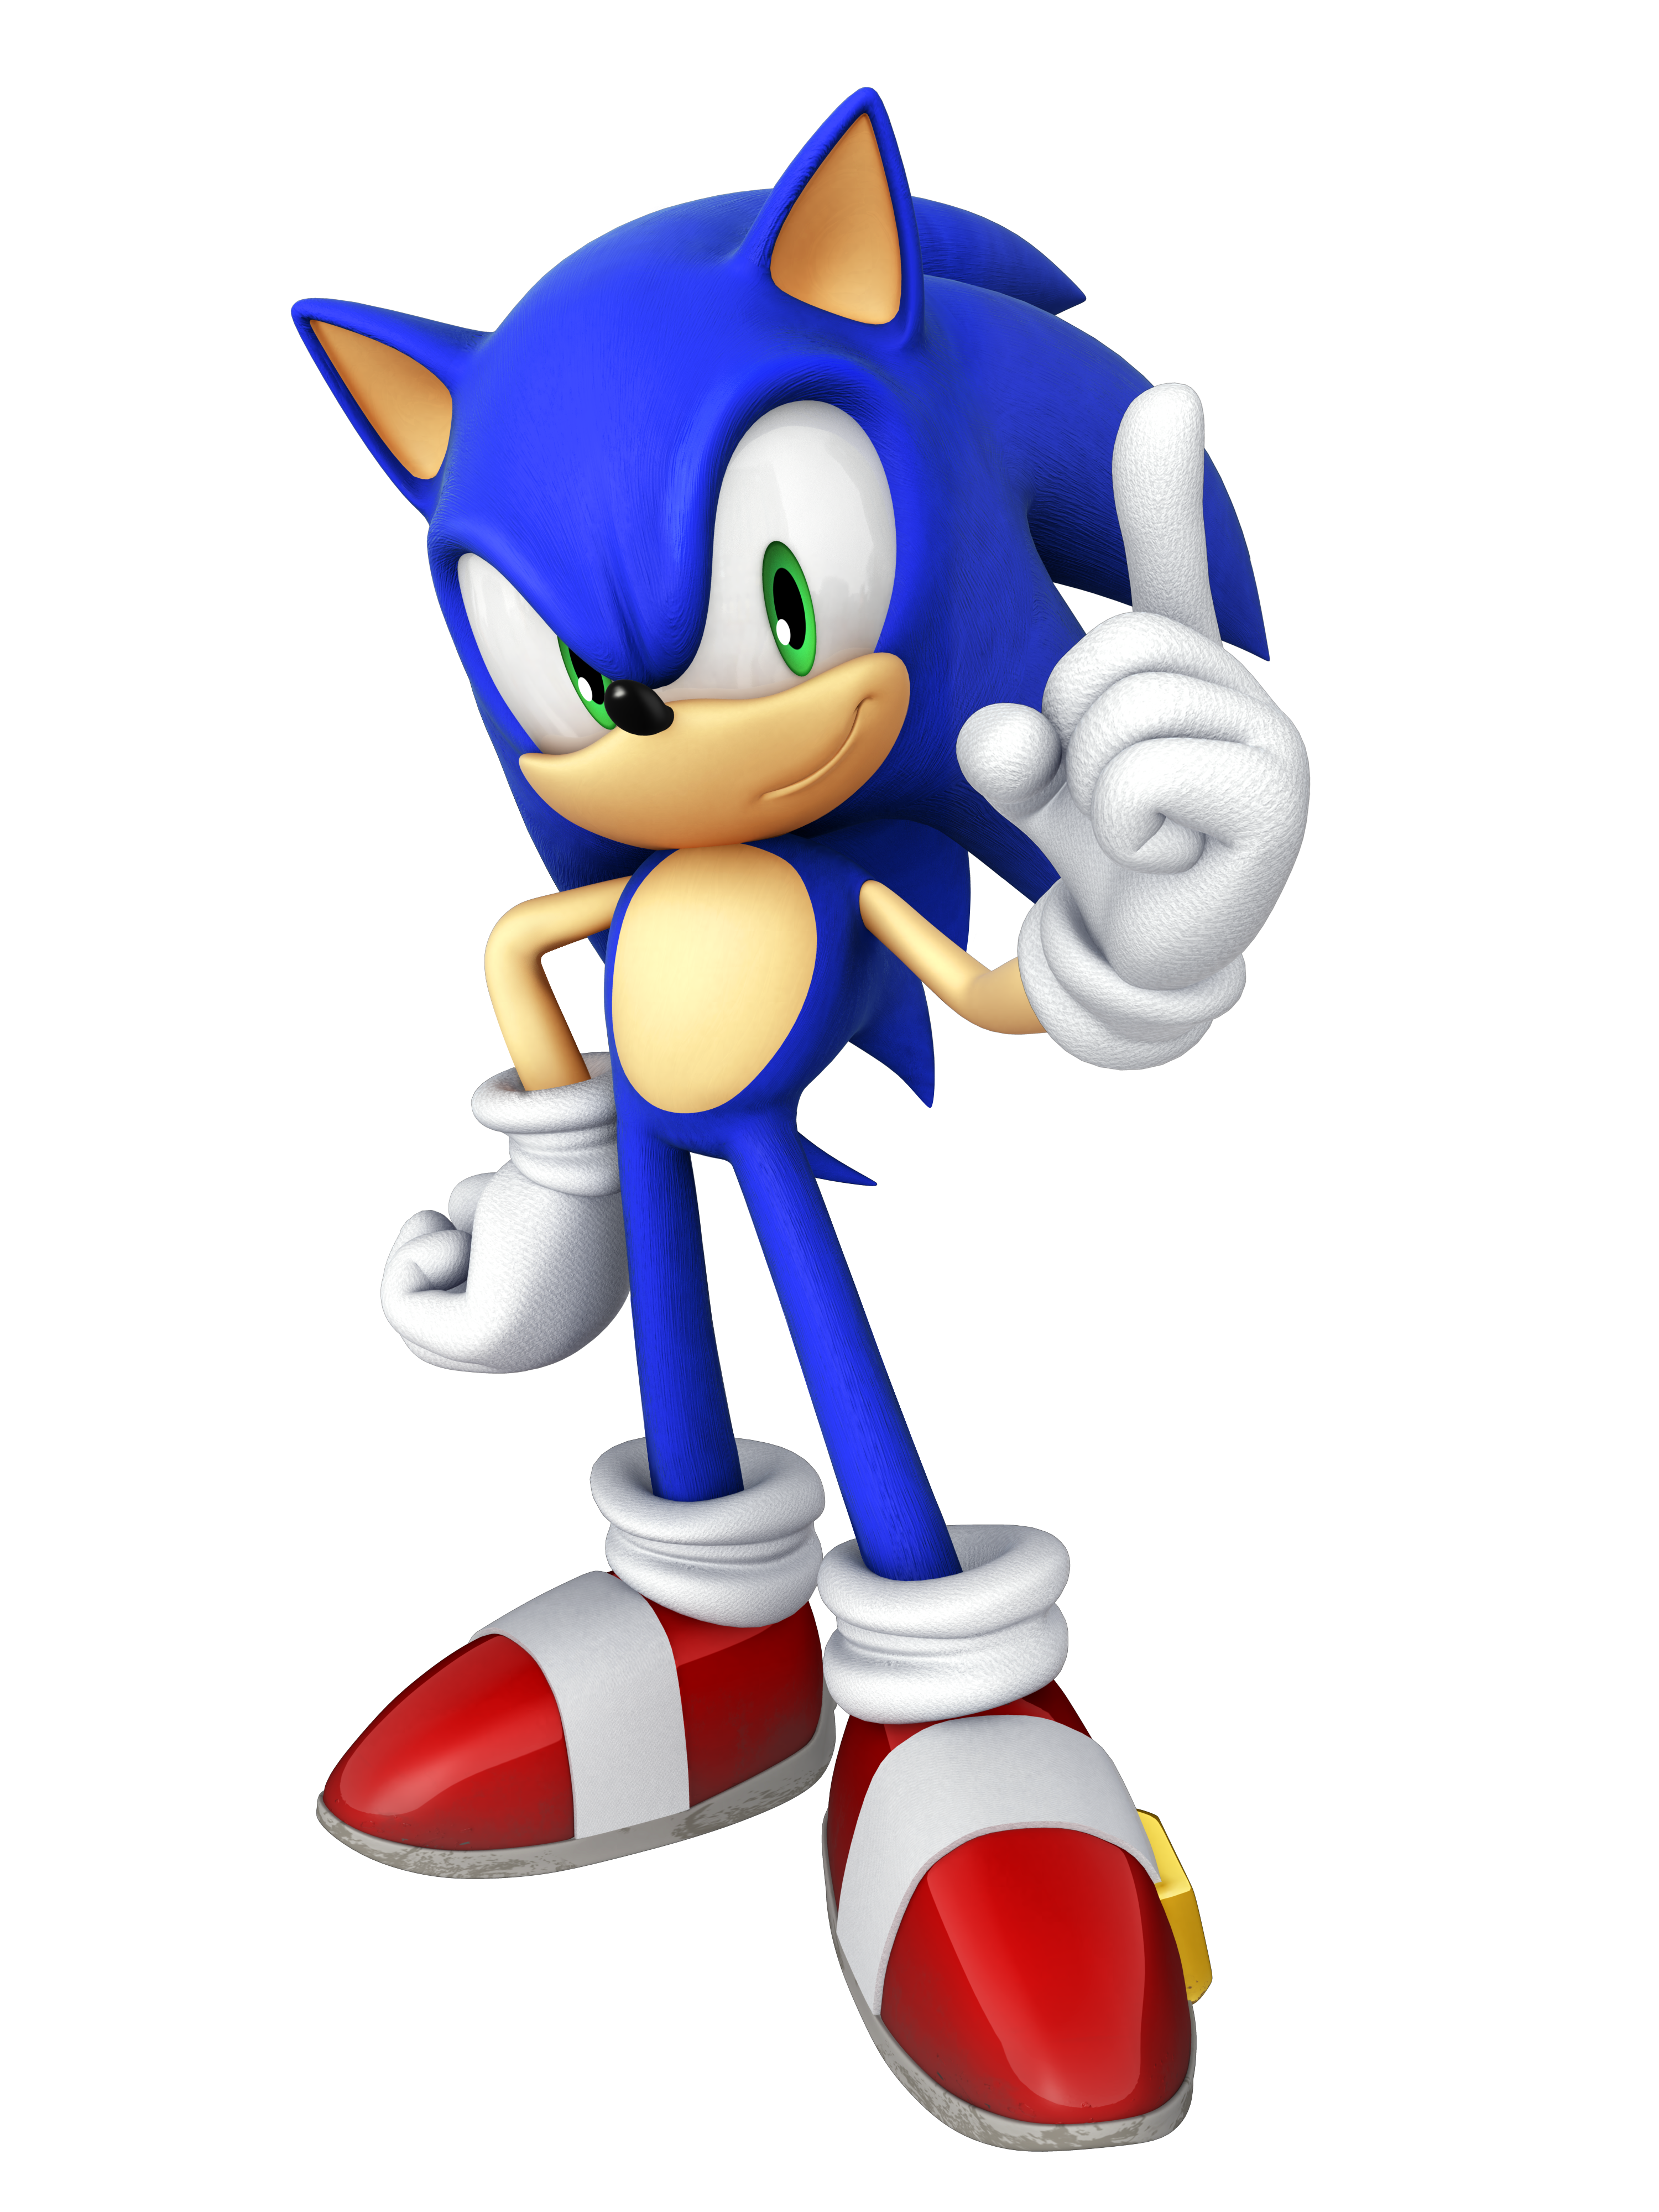 Download Sonic Toy Episode Character Fictional The Hedgehog Hq Png Image Freepngimg